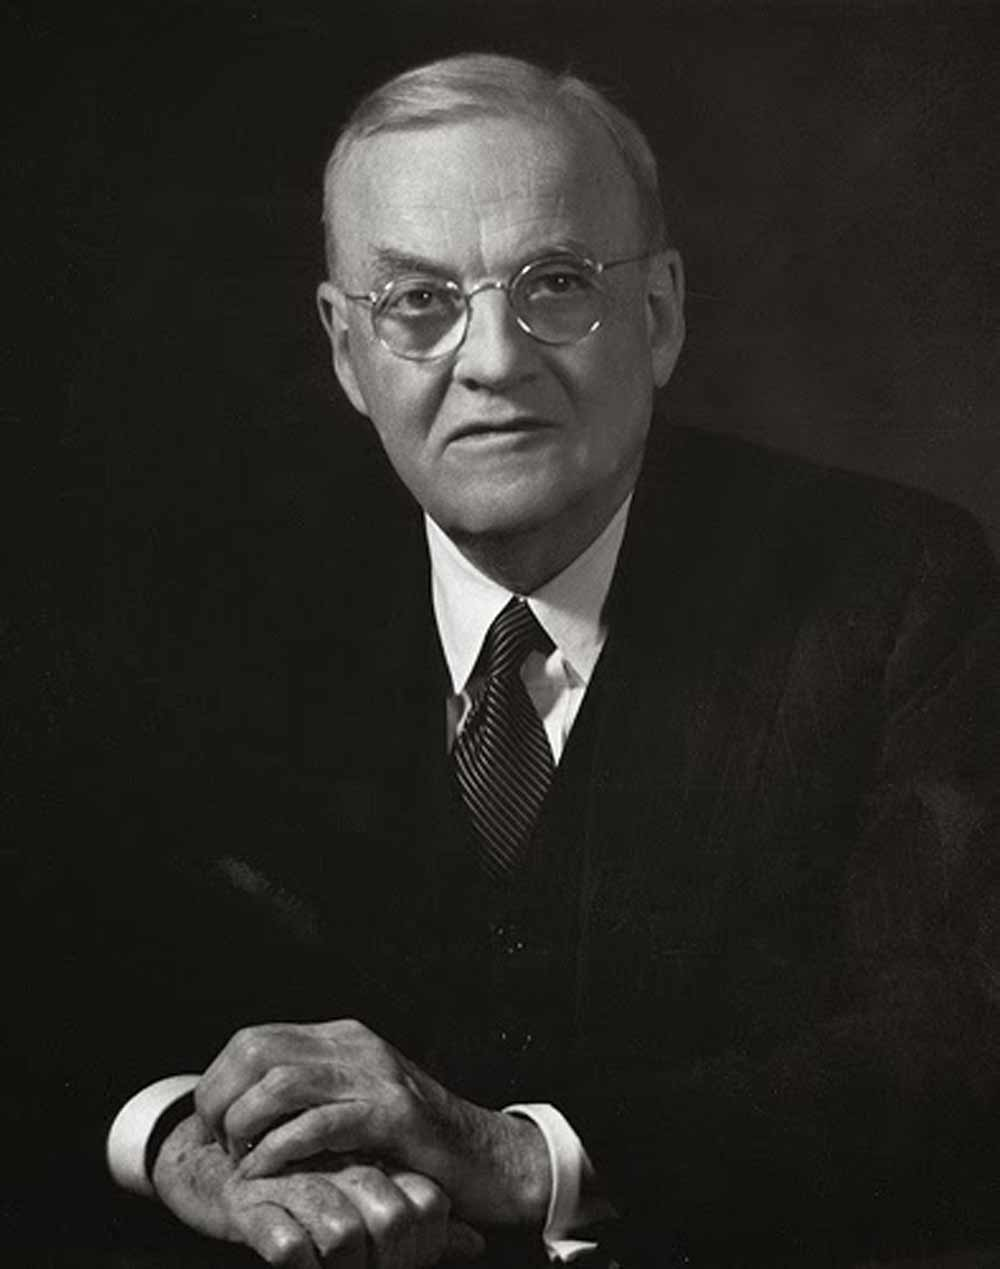 duncan blake suicides solved the constantine report allen dulles 5th director of central intelligence john